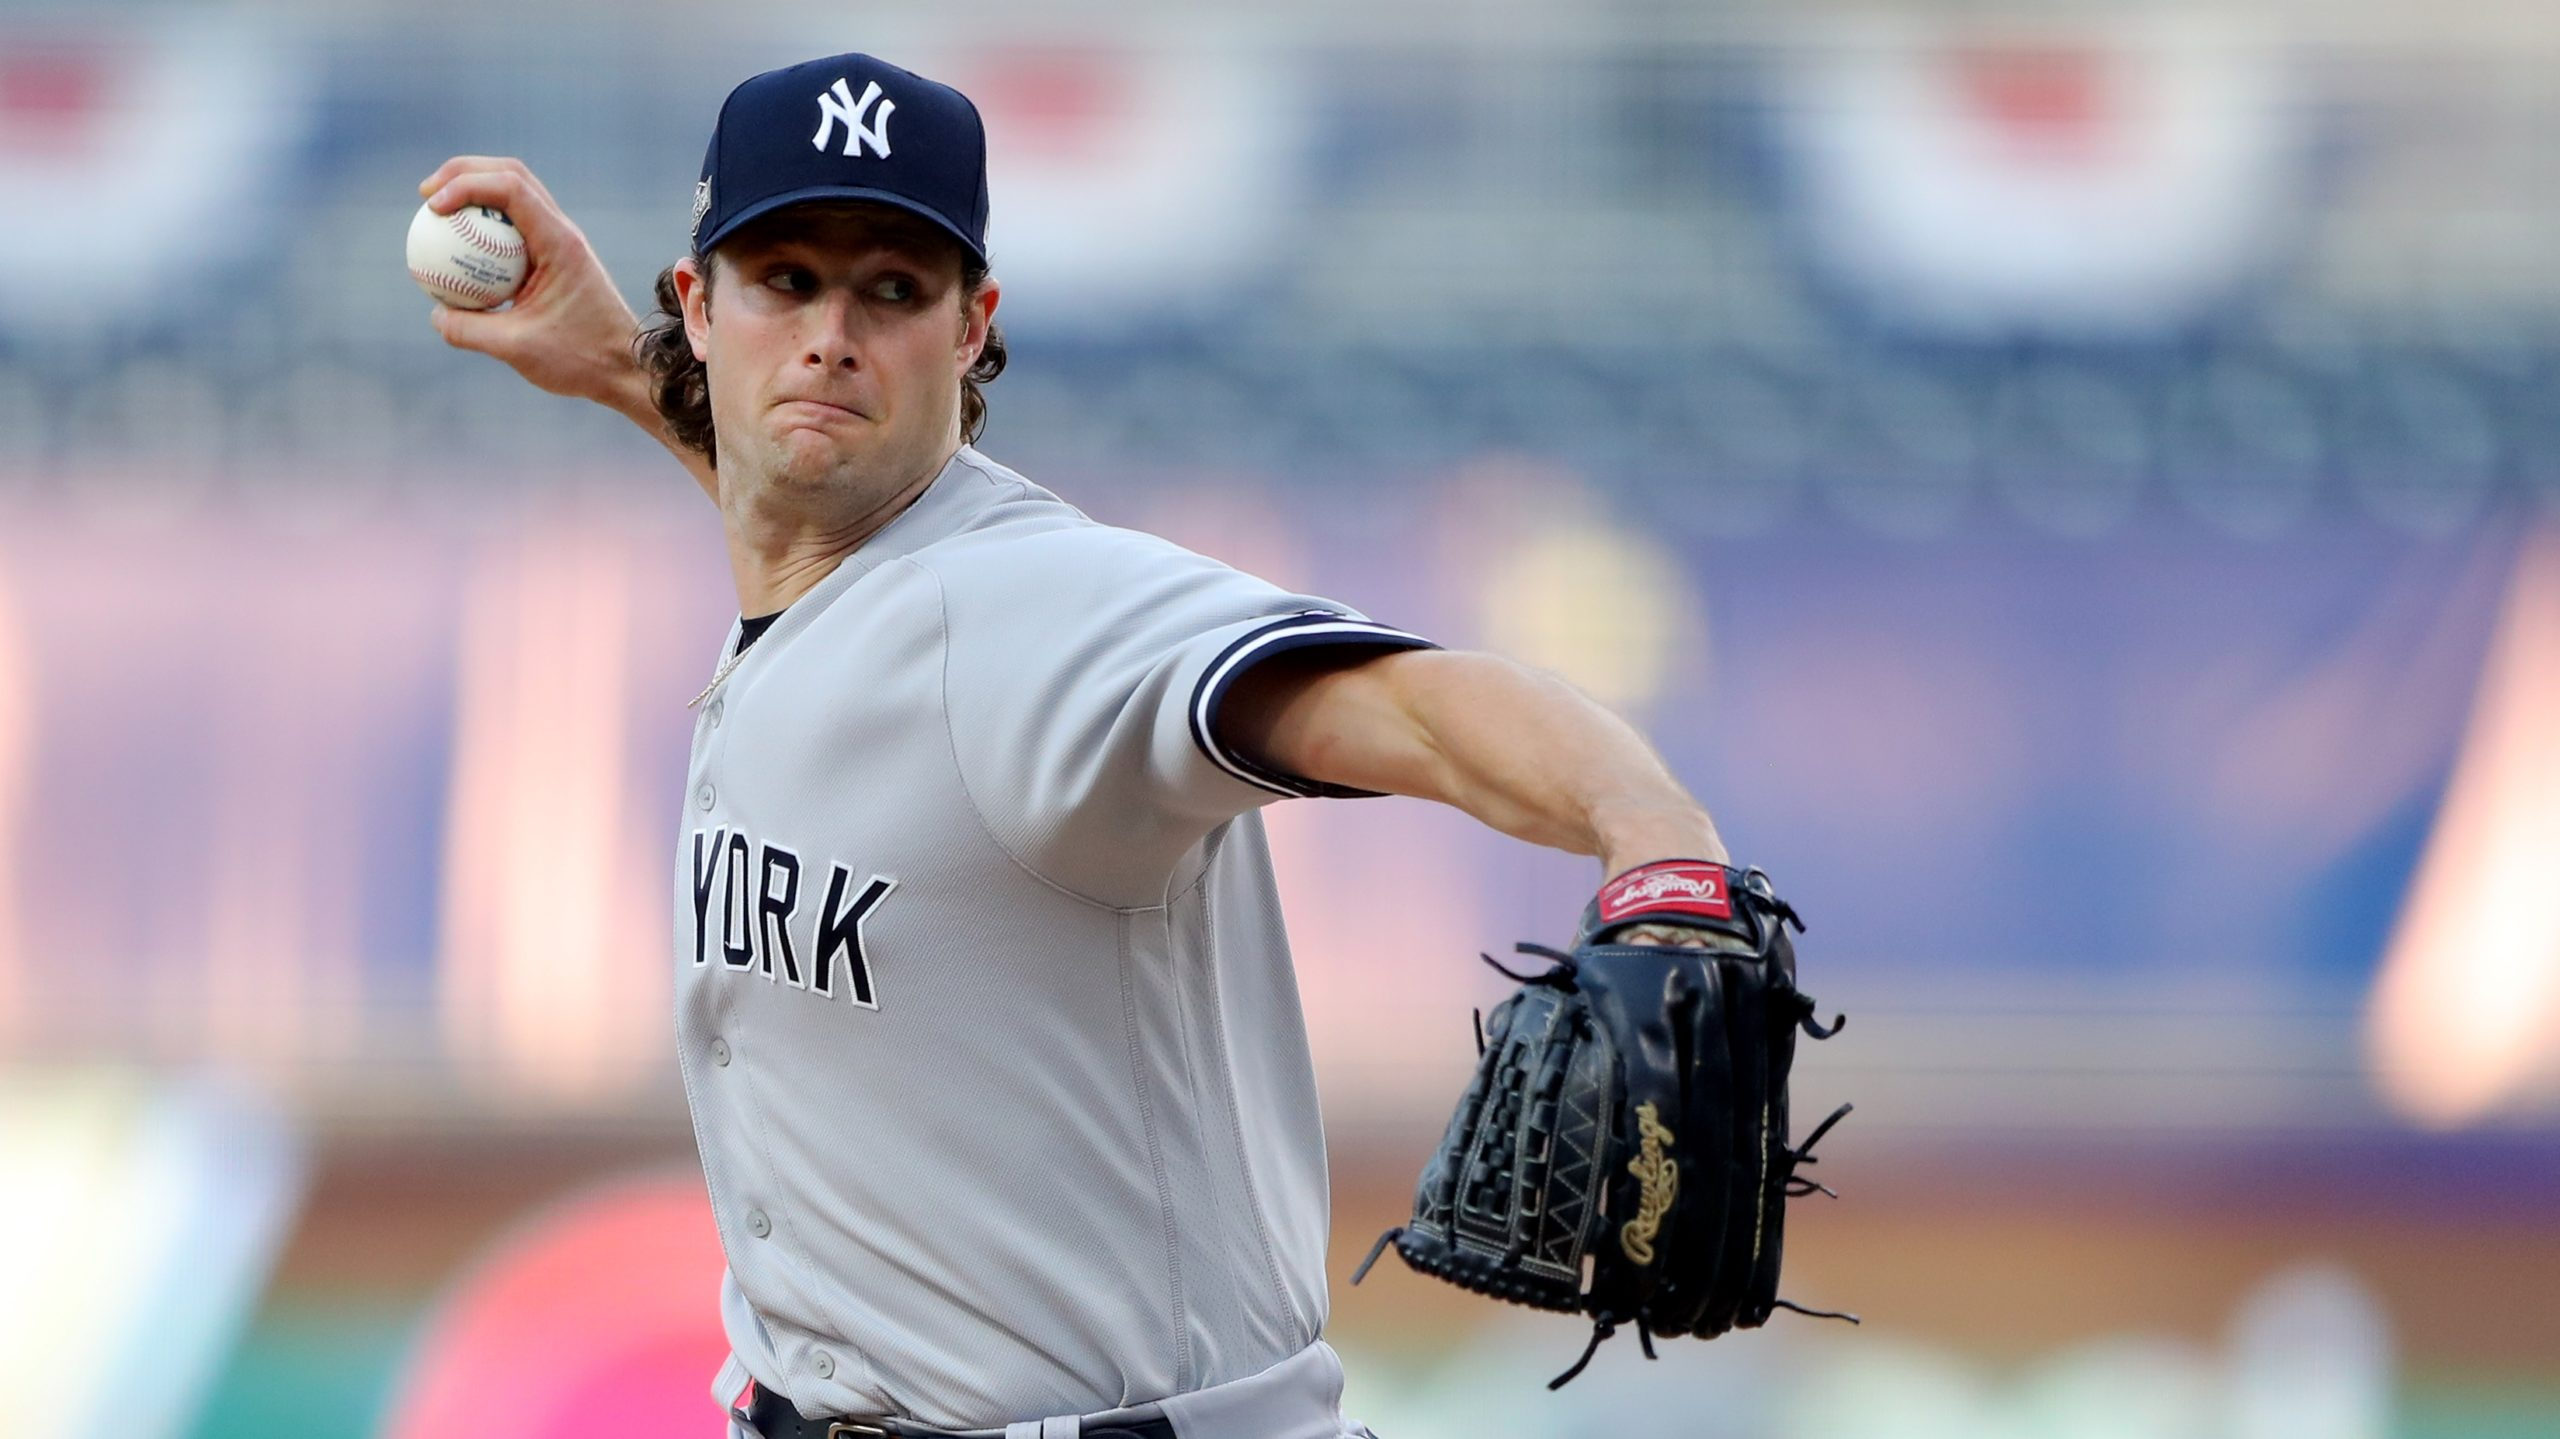 Yankees vs. Rays Betting Odds, Picks & Predictions: ALDS Game 5 (Oct. 9) article feature image